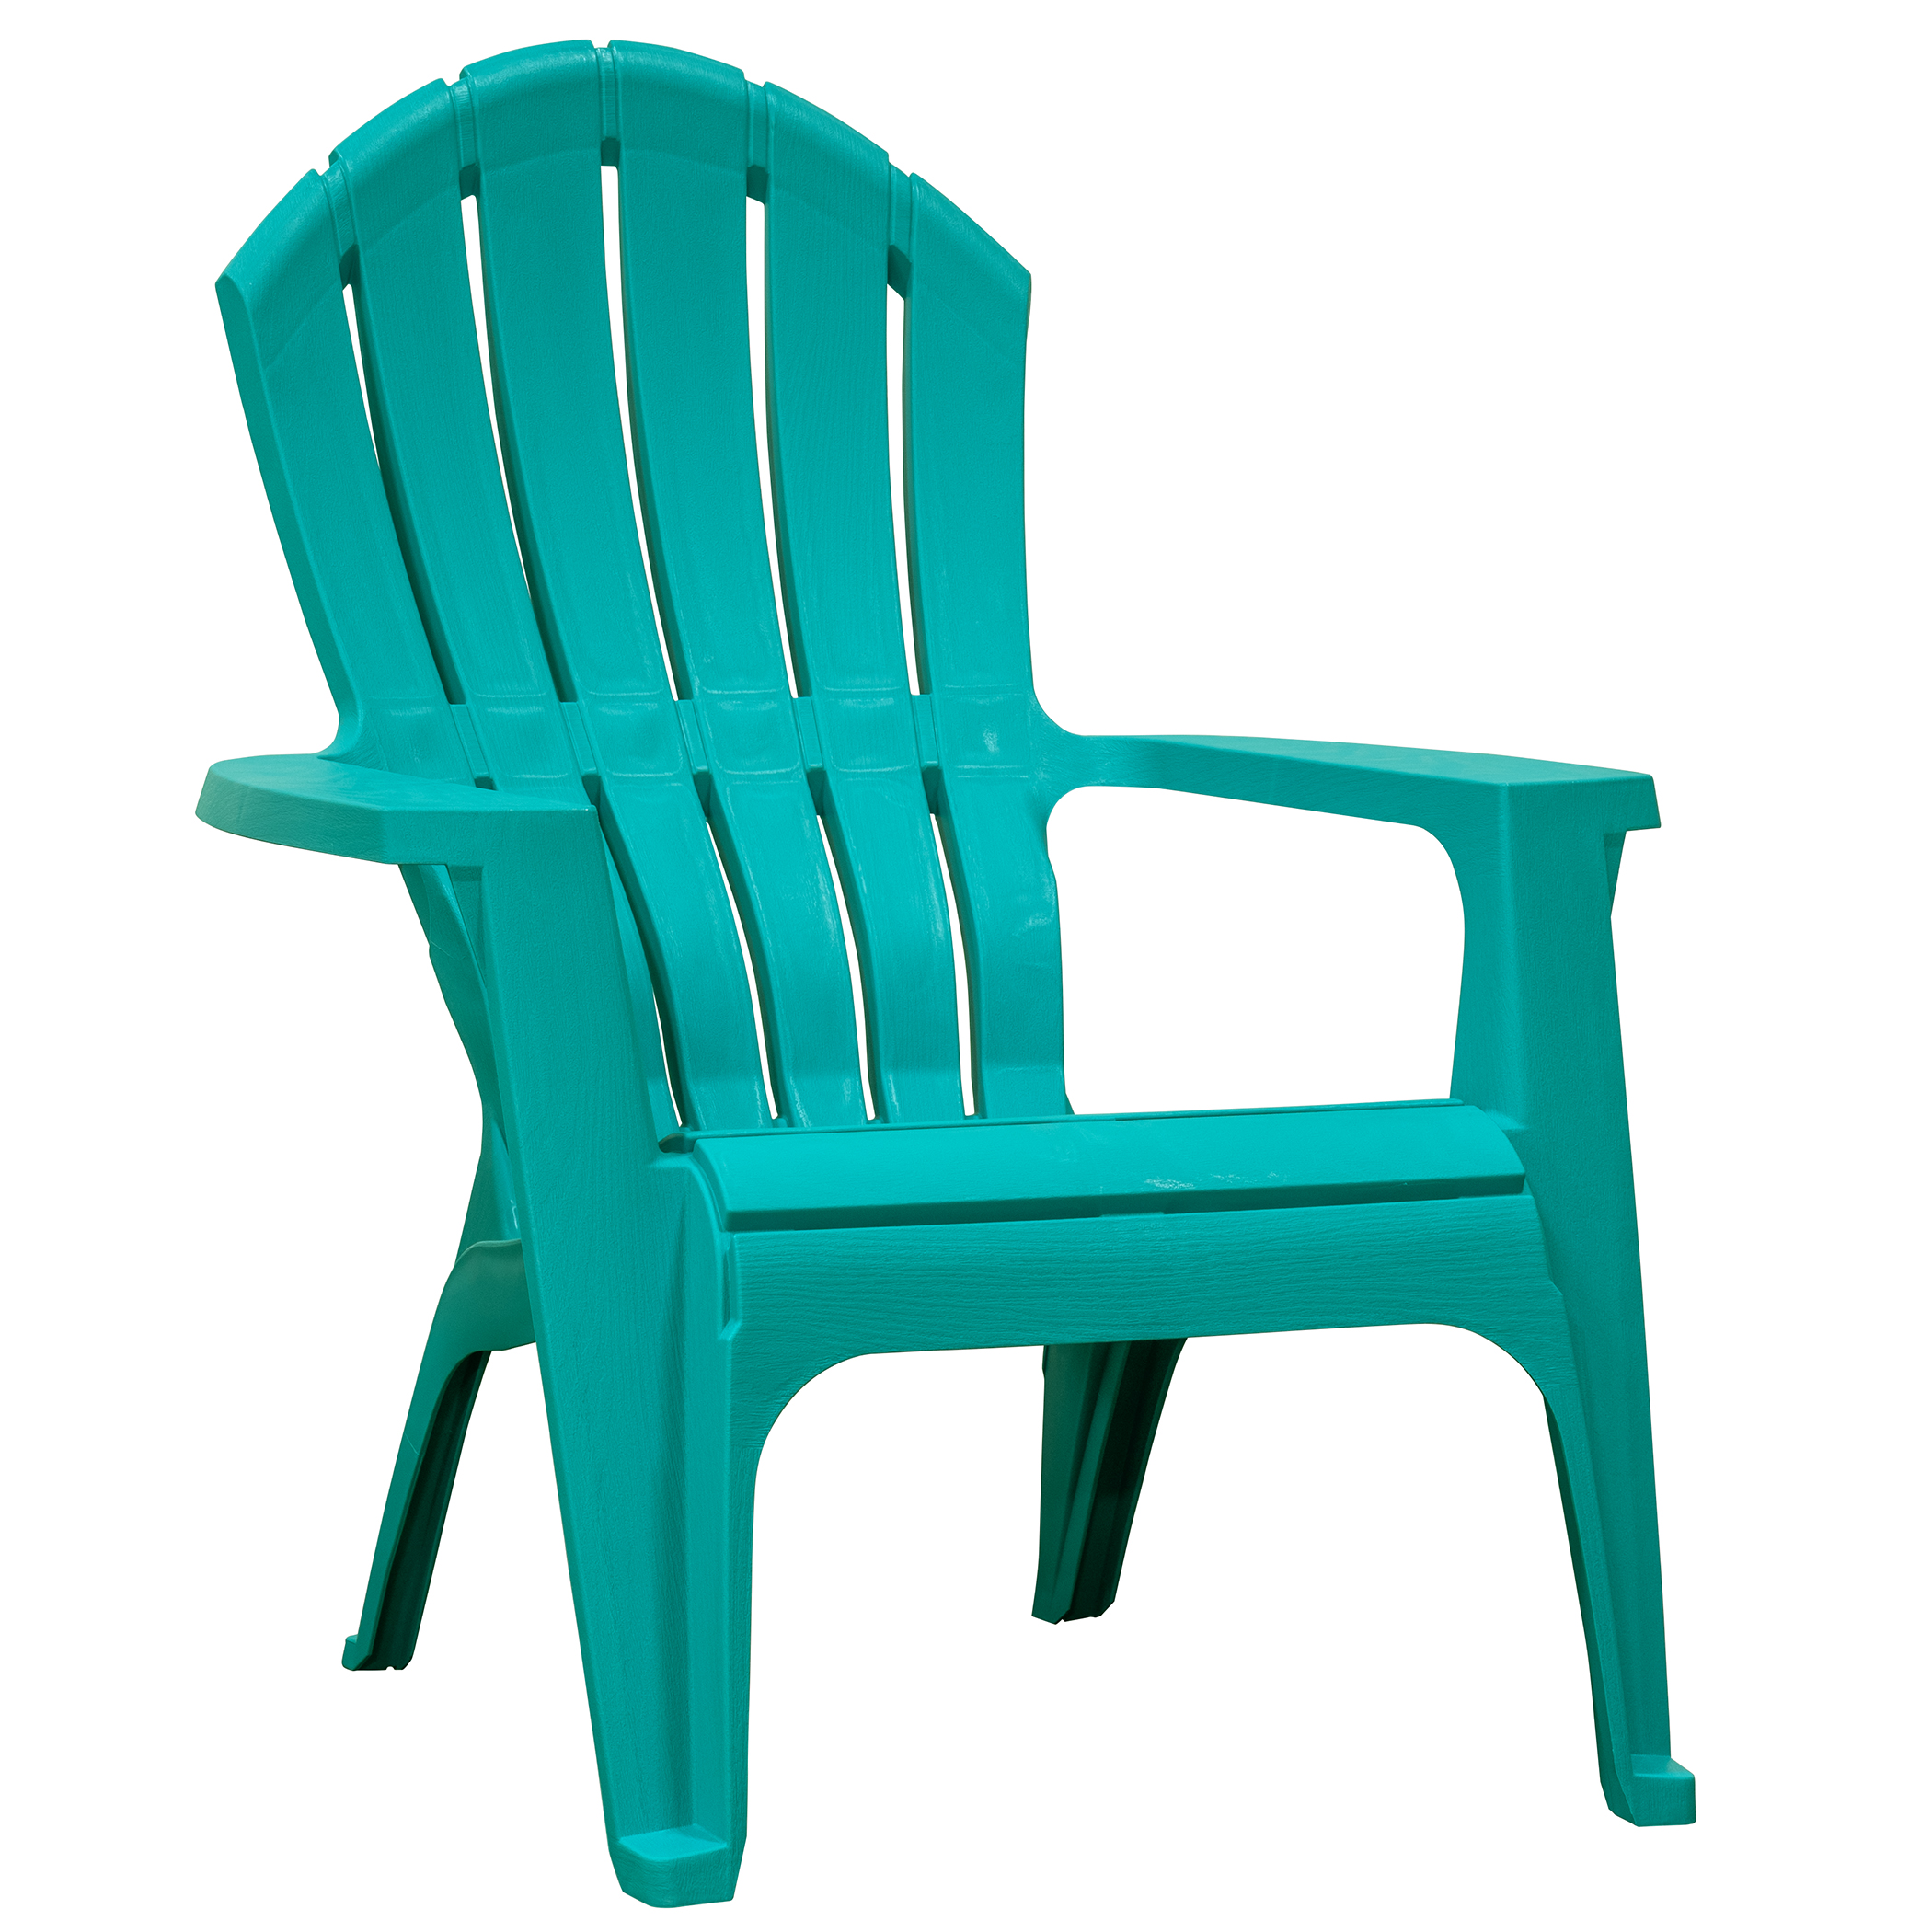 adams manufacturing realcomfort outdoor resin stackable adirondack chair teal